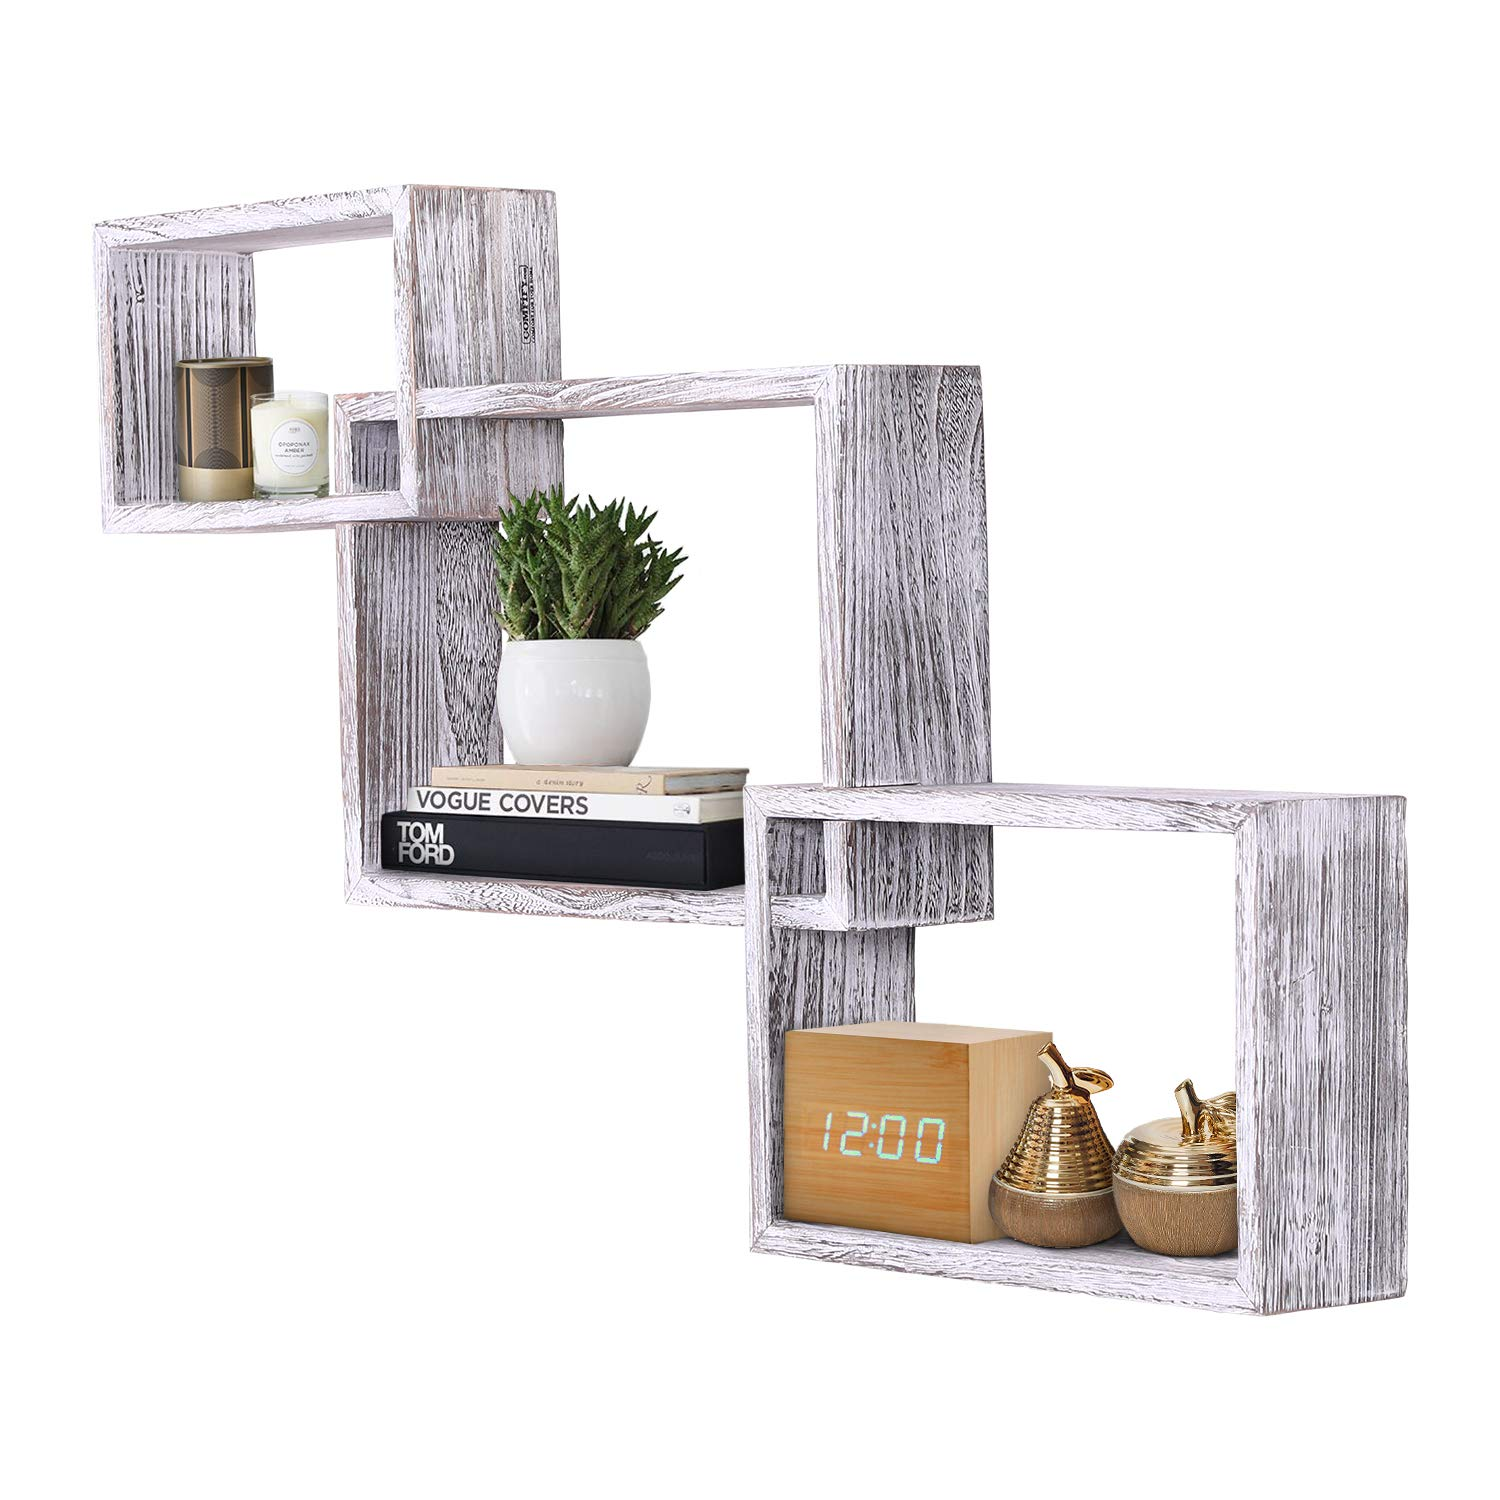 Rustic Wall Mounted Tier Square Shaped Floating Shelves – Set Of 3 – Screws  And Anchors Included - Farmhouse Wooden Shelves For Bedroom, Living Room